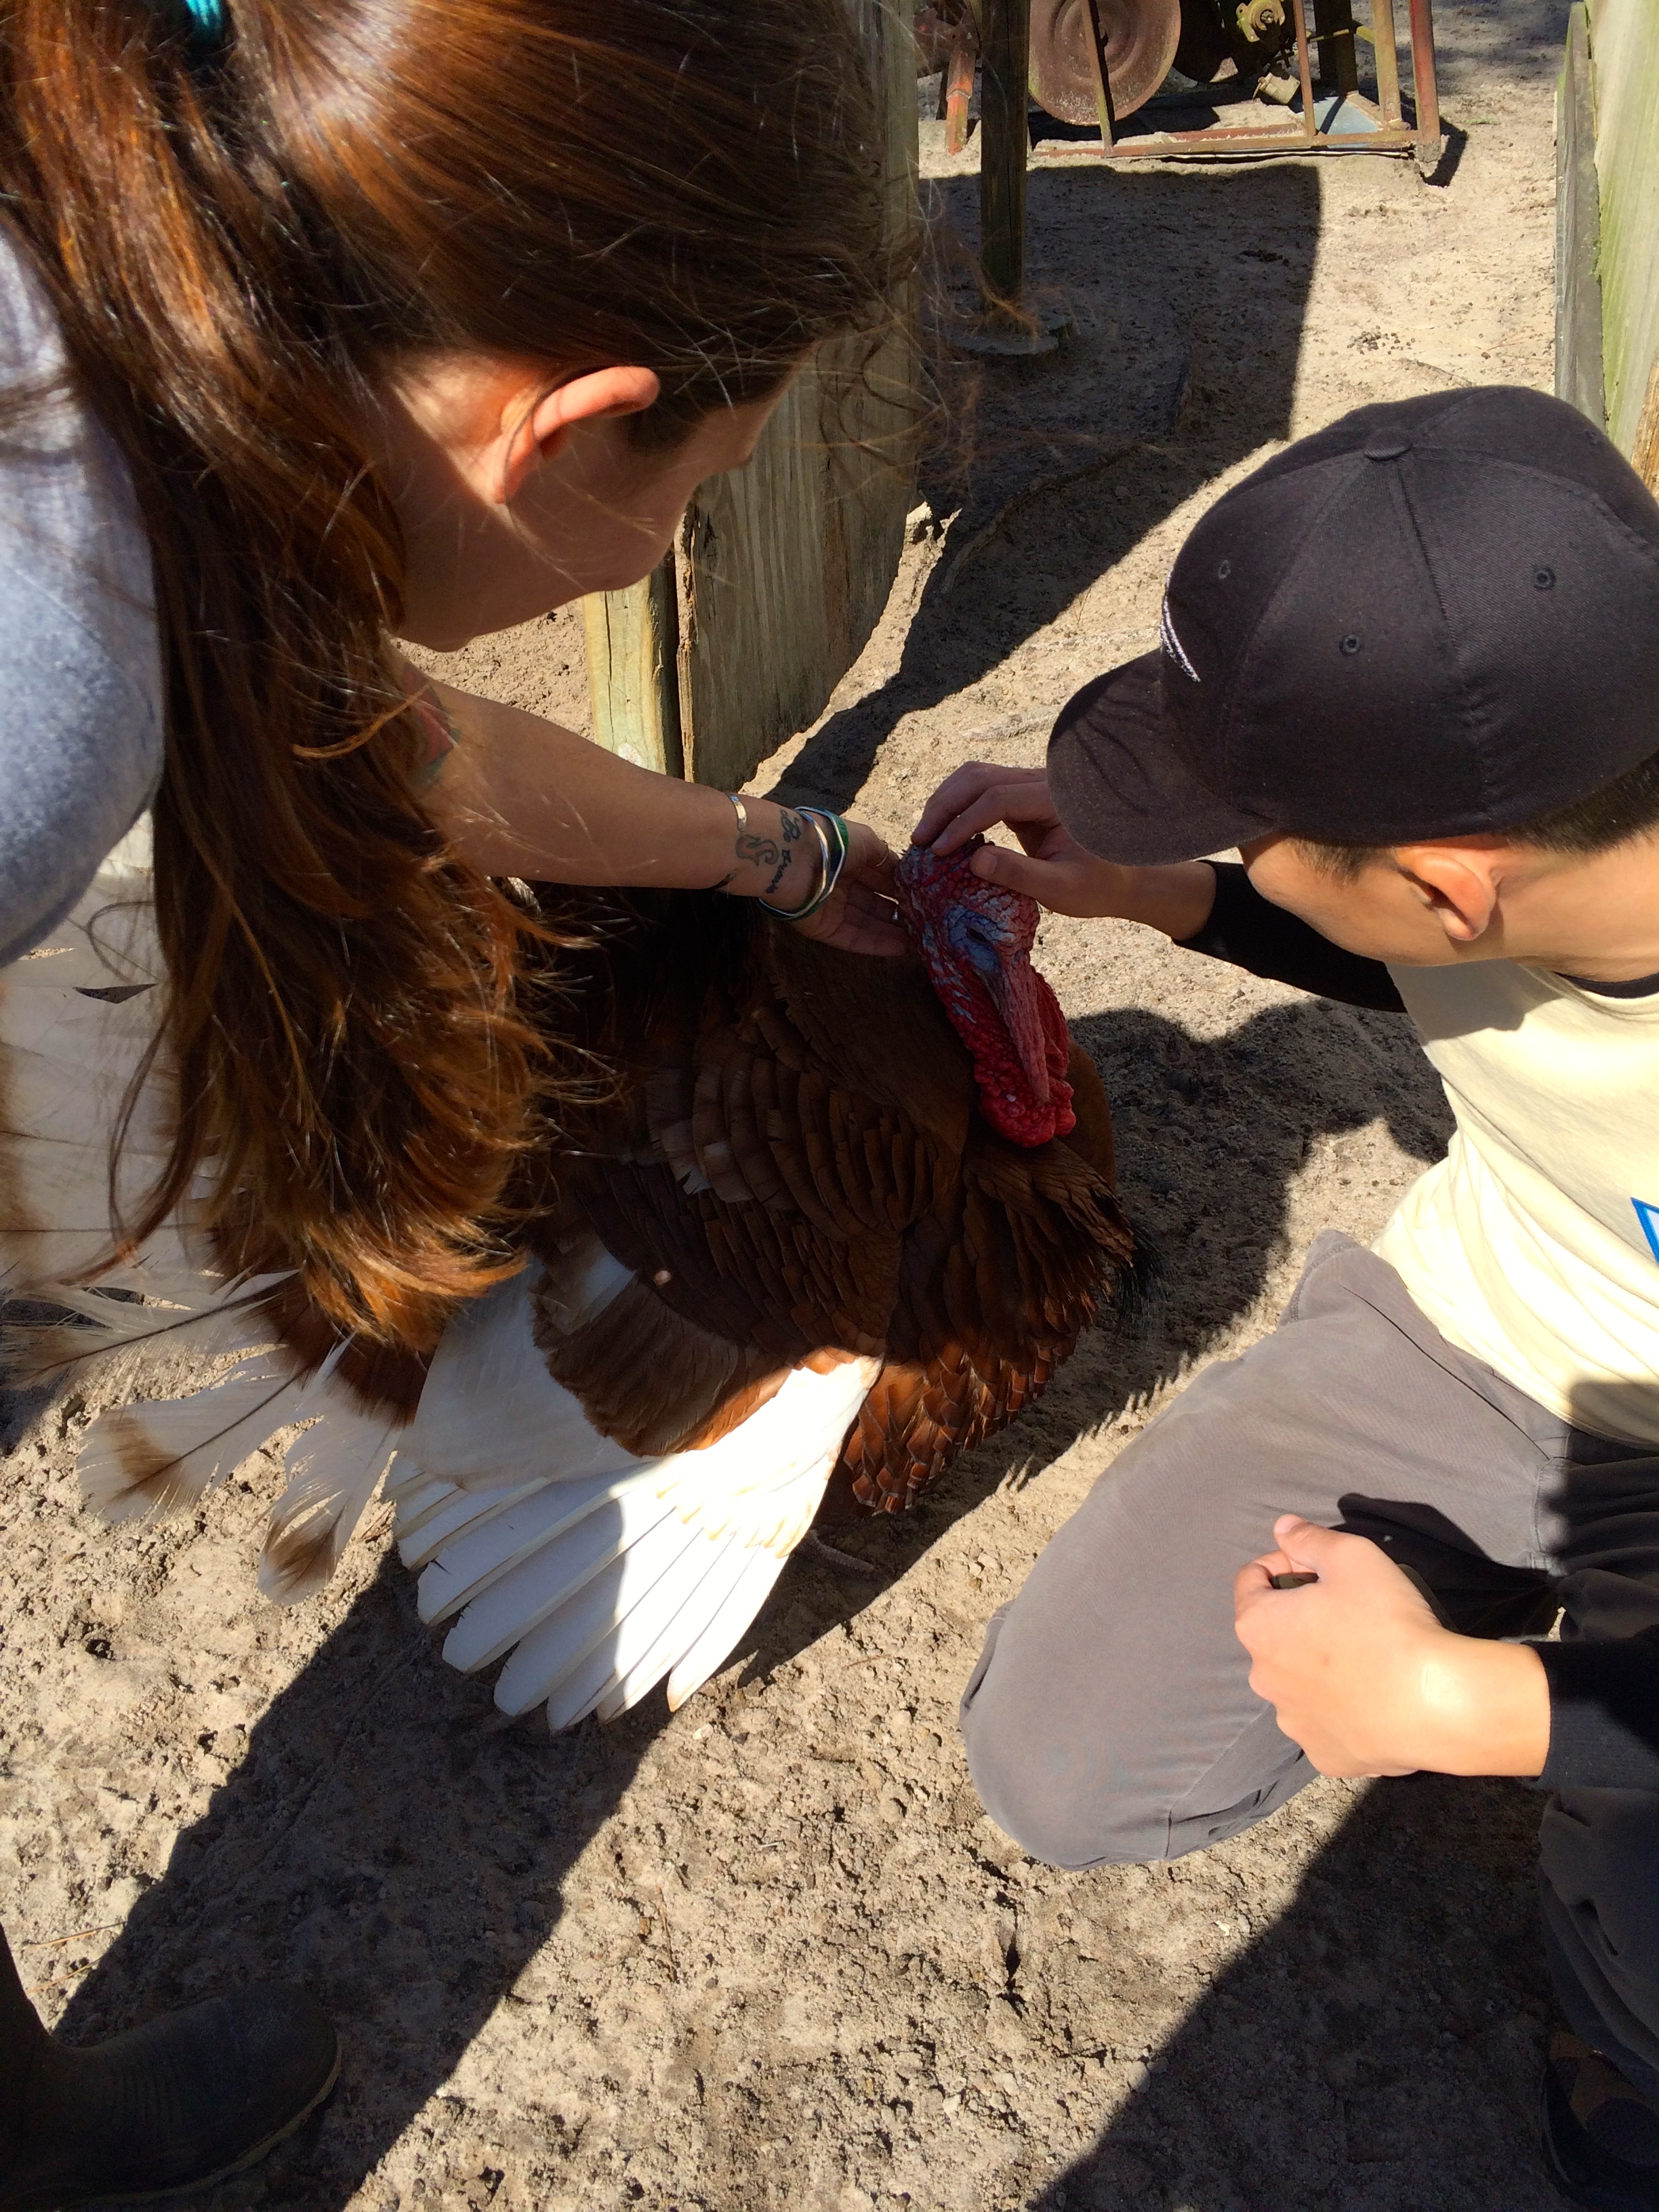 Petting a turkey